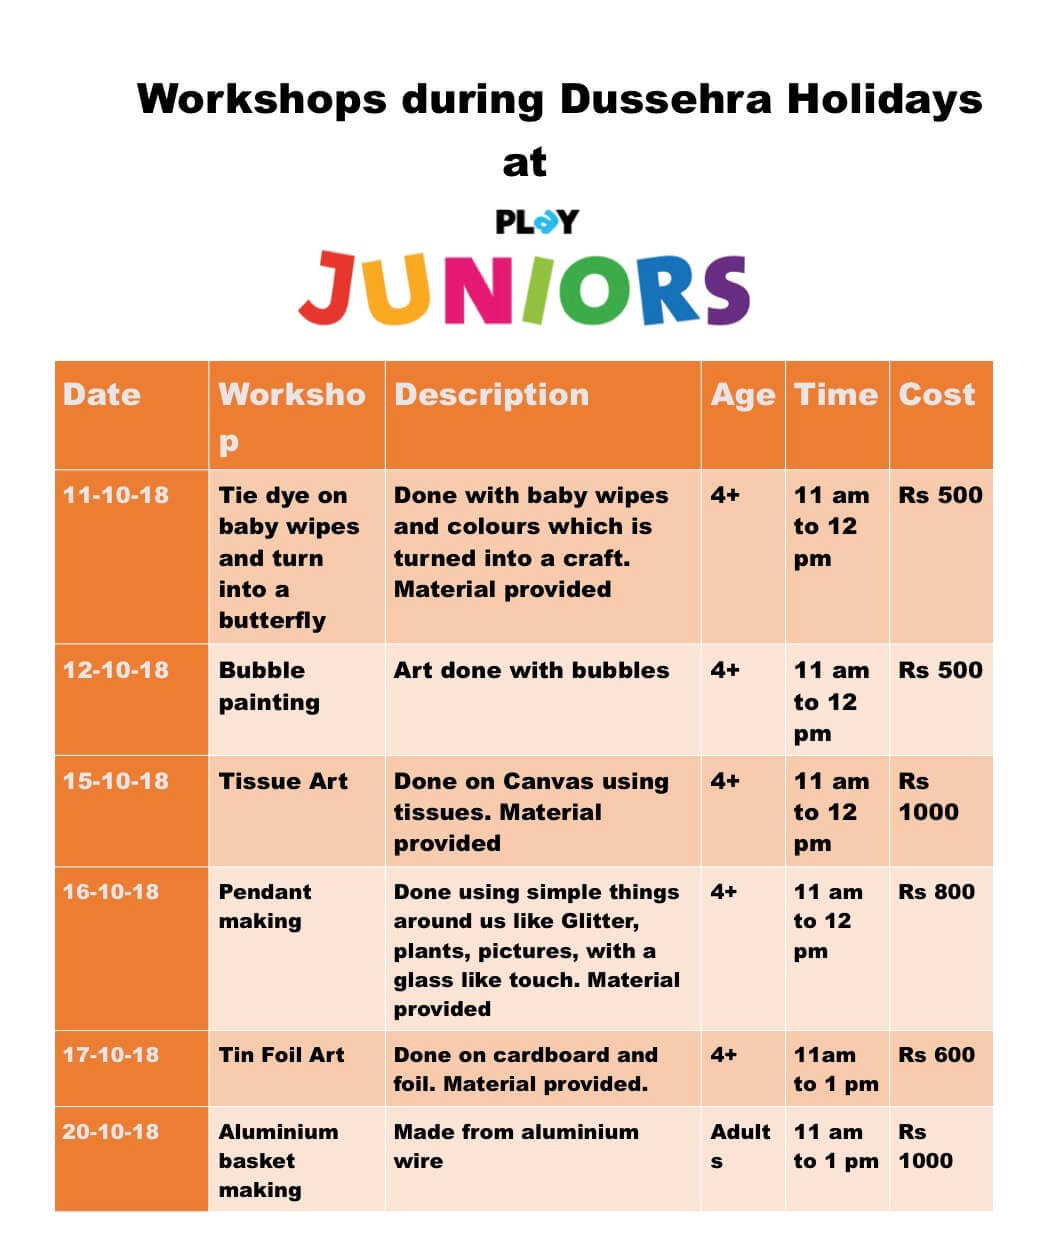 Dussehra Workshop at Play Juniors Cover Image